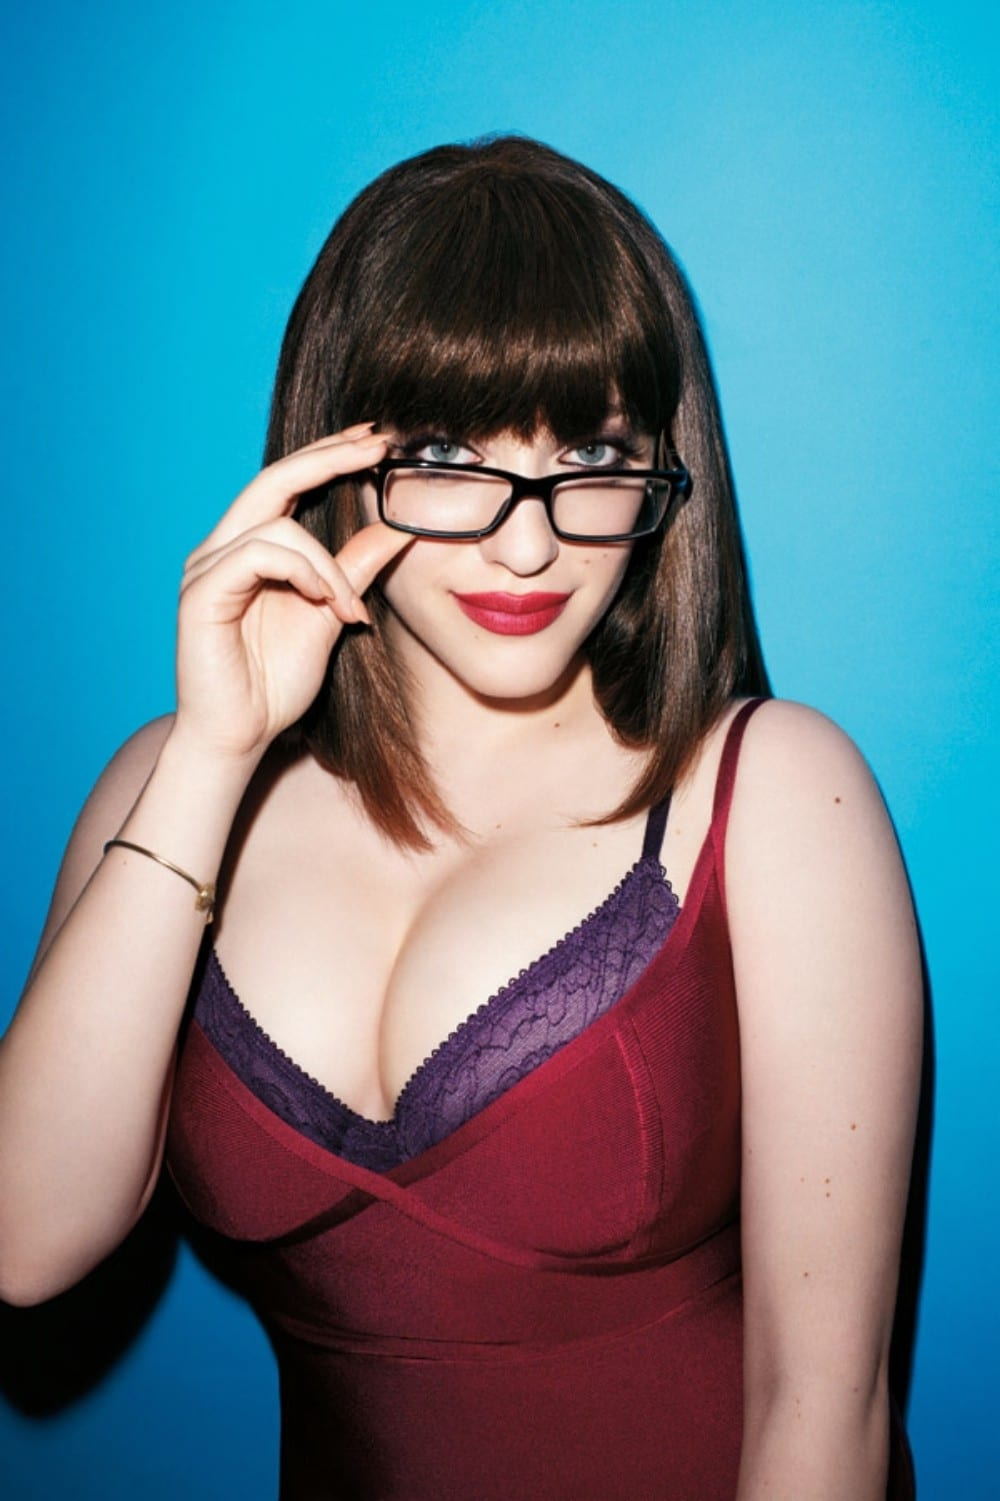 Kat Dennings hot pic of her with glasses on